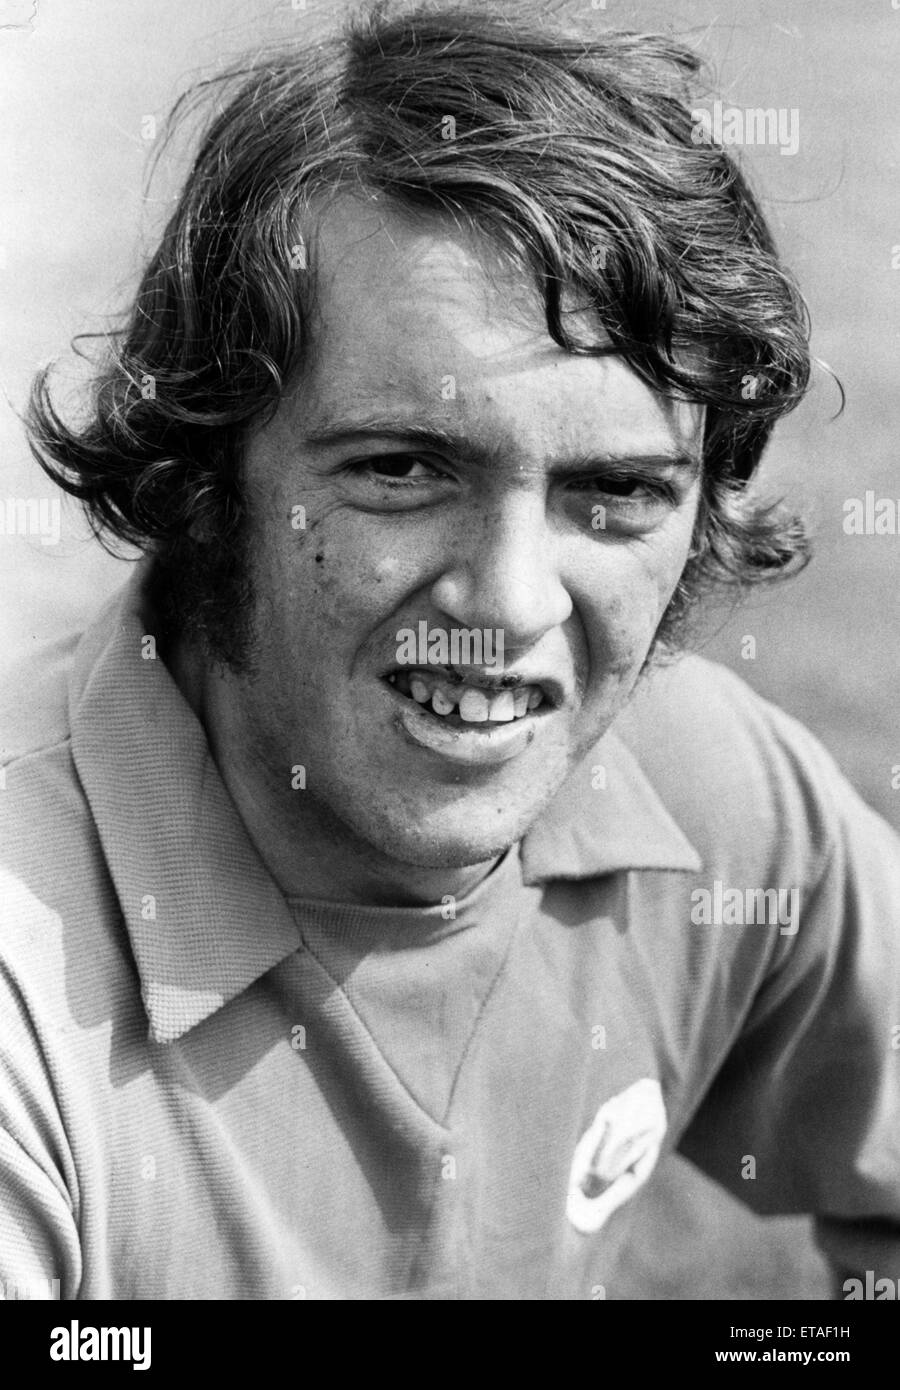 John Parsons, Cardiff City Football Player, 1968 - 1973. Pictured, 12th July 1971. - Stock Image